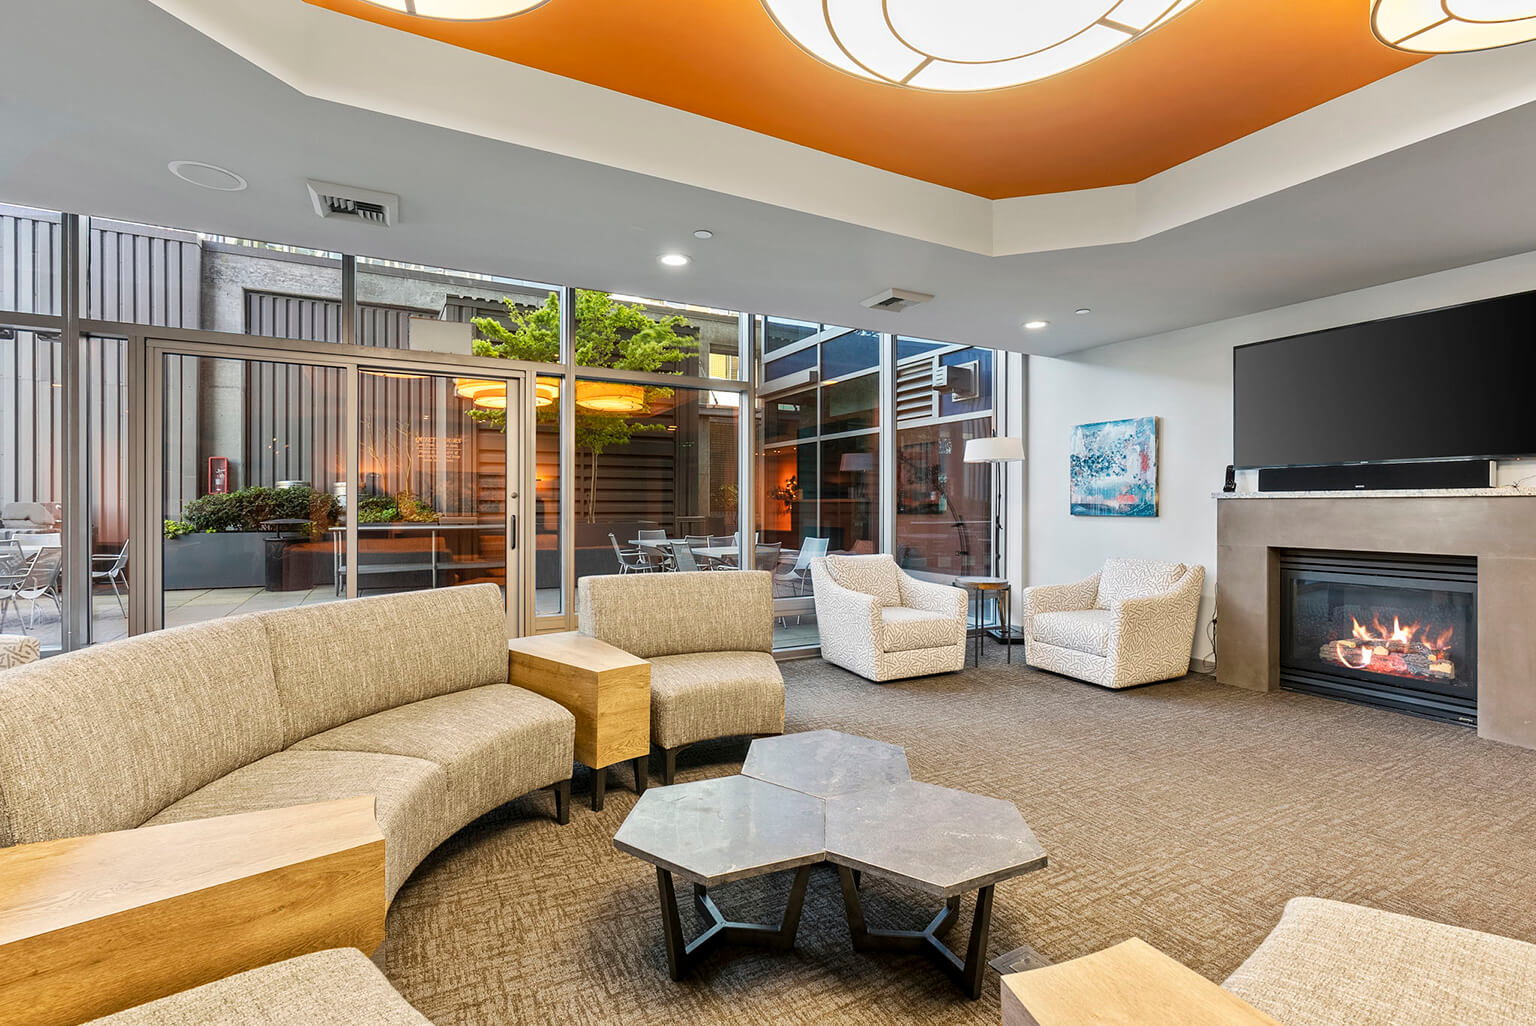 Impressive club room and adjacent patio are great for large scale entertaining